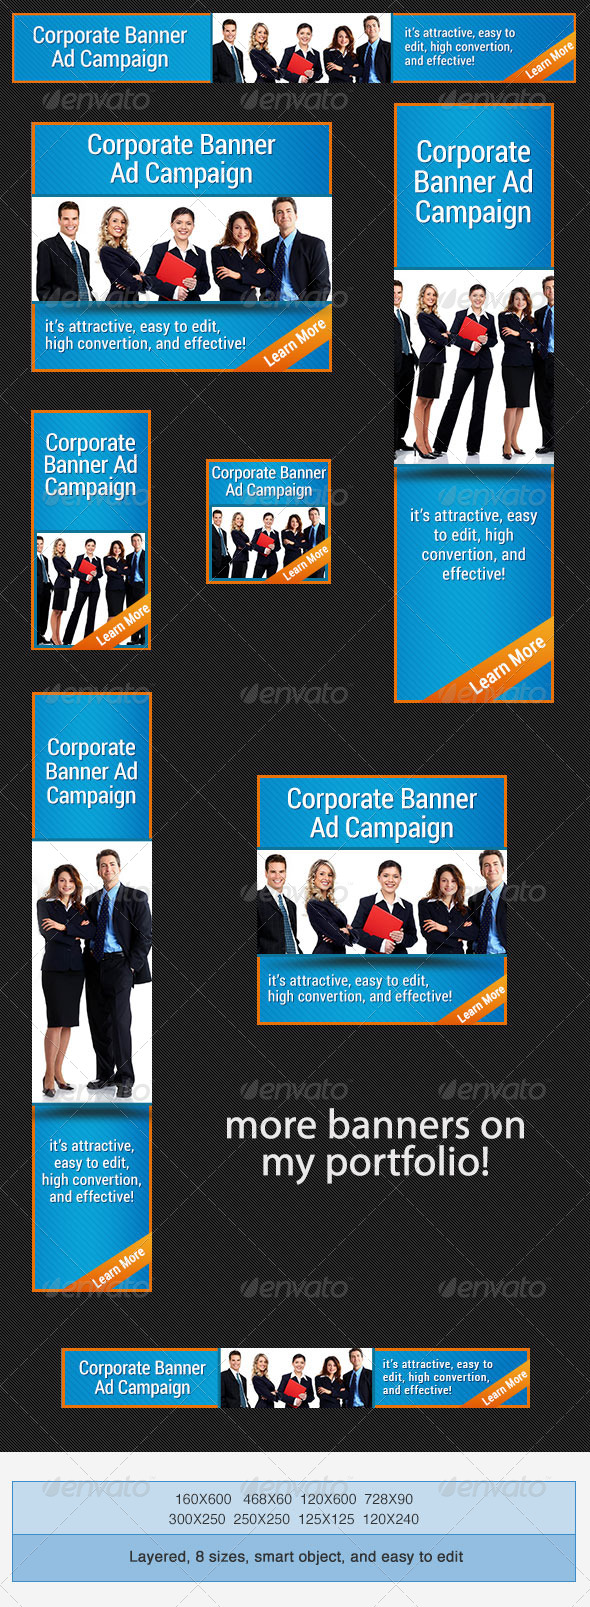 Vertical Banner Ad Template